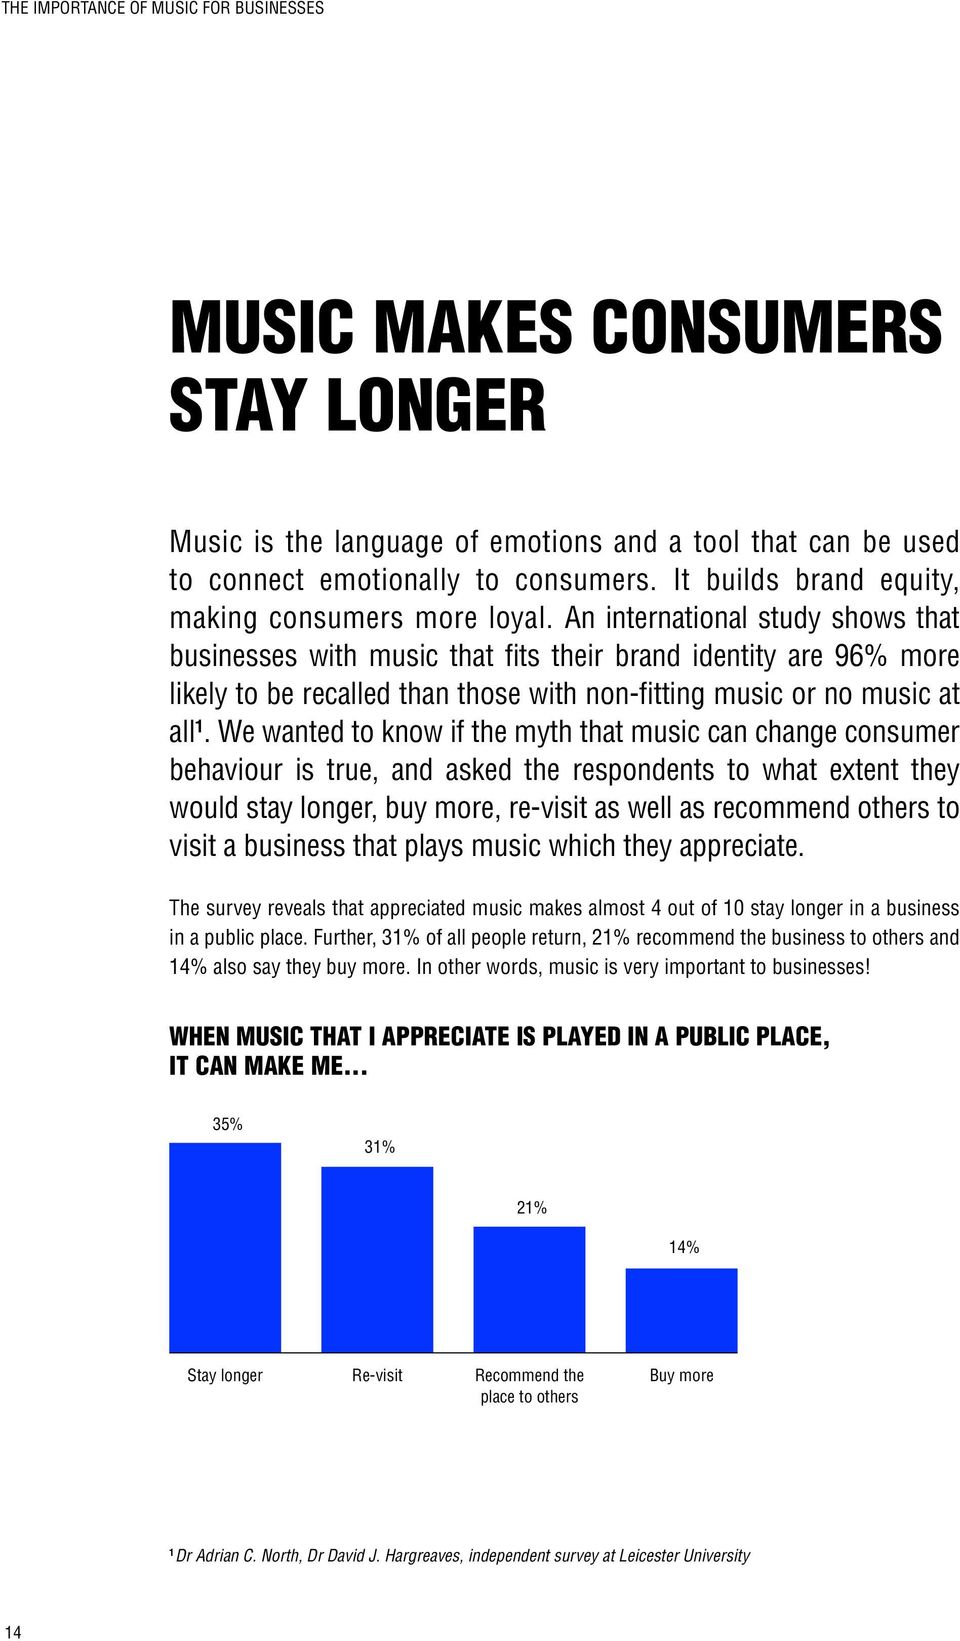 An international study shows that businesses with music that fits their brand identity are 96% more likely to be recalled than those with non-fitting music or no music at all 1.